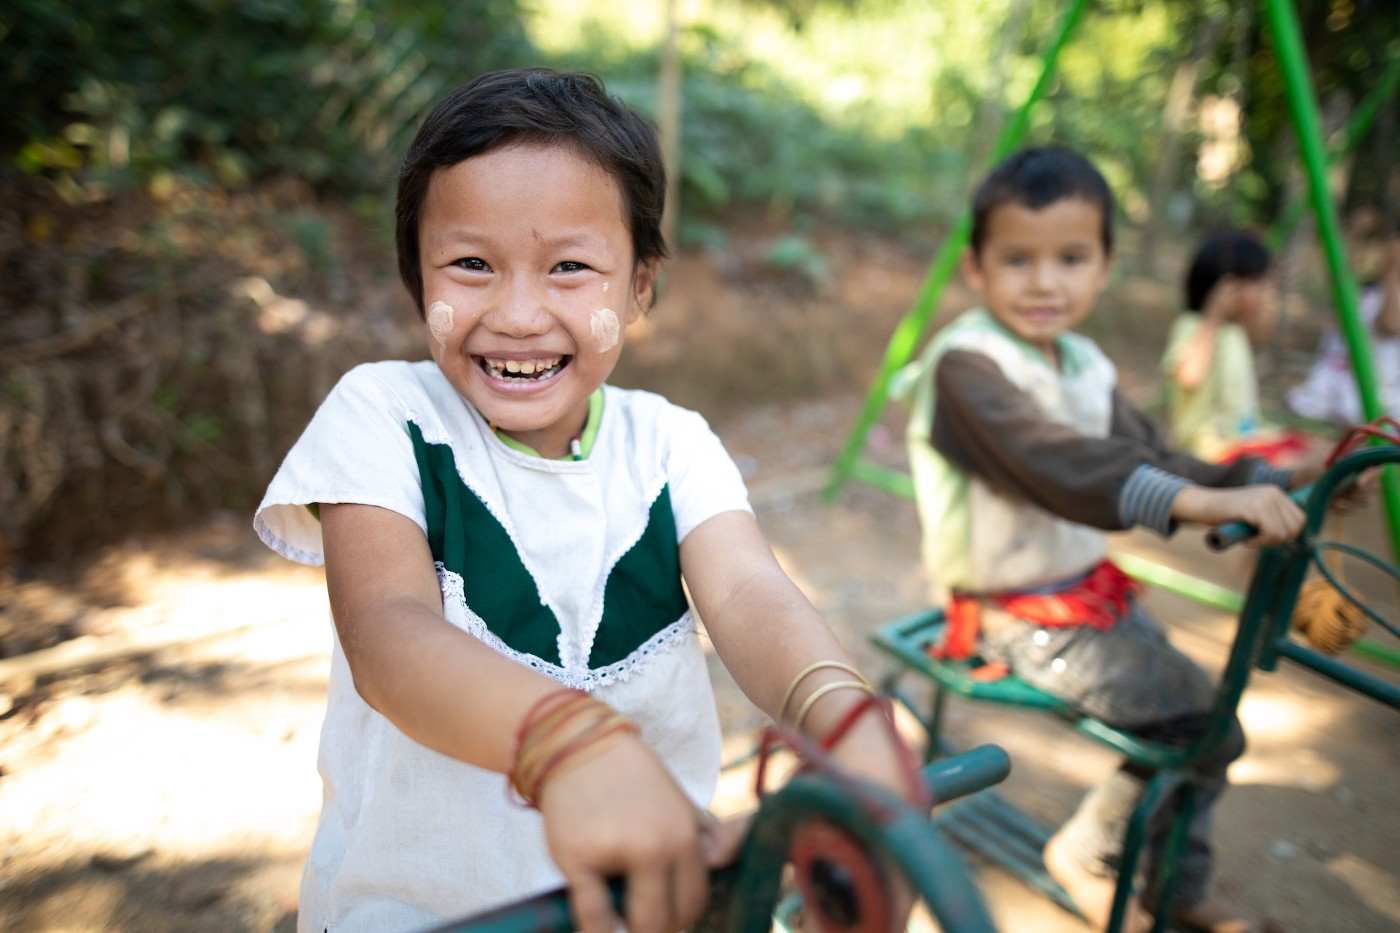 A young Thai girl is wearing a green and white shirt and playing on a playground with several other children.